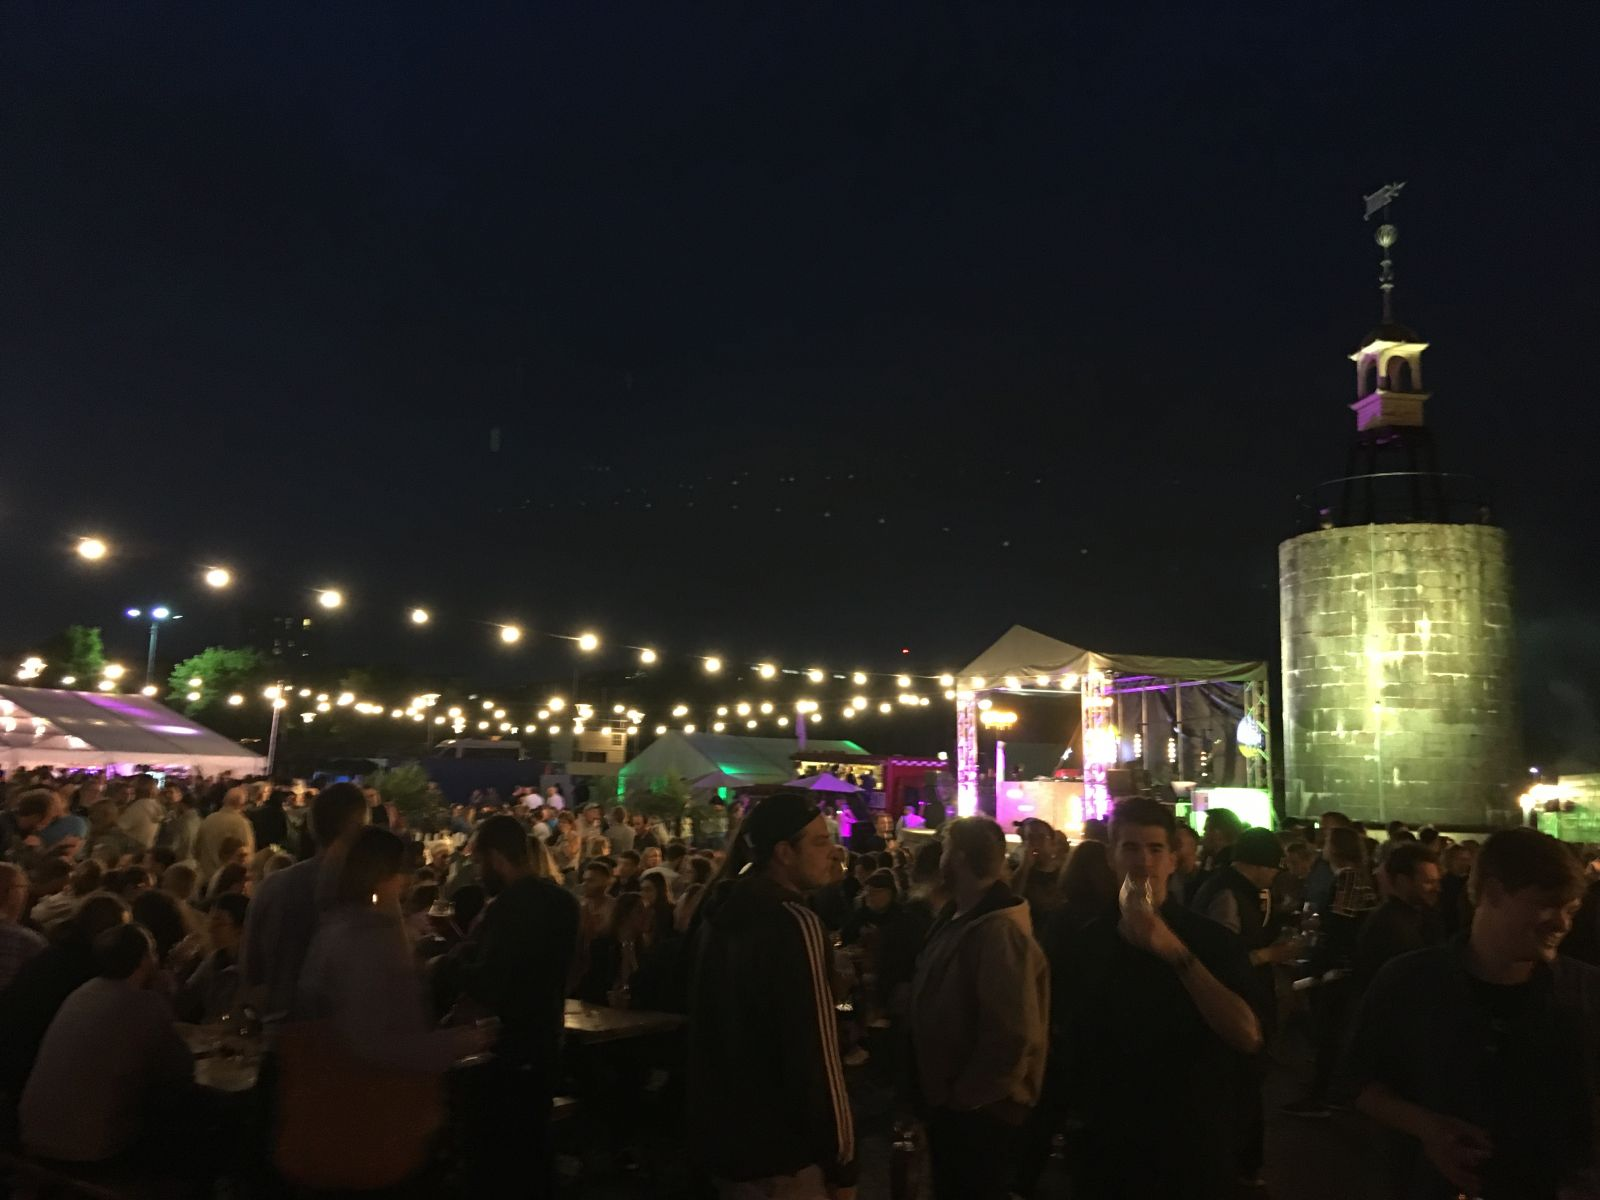 Organisers took over the Lloyd's Amphitheatre for the 2018 Craft Beer Festival.